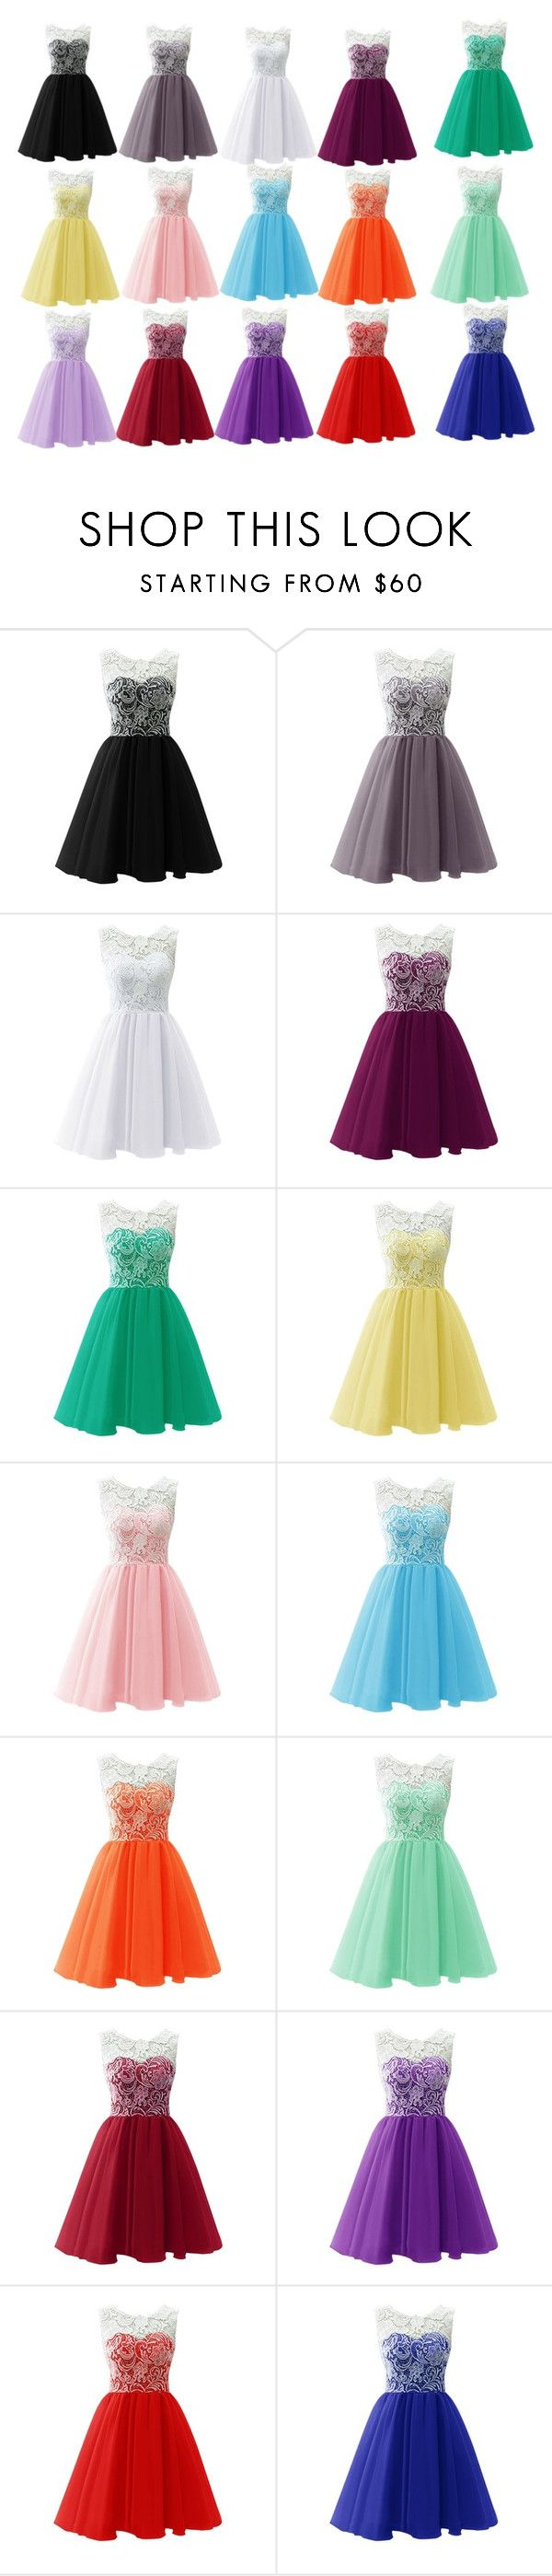 """Which color looks best on you?"" by gingger8 on Polyvore featuring Color, dance, dresses, Homecoming and yass"